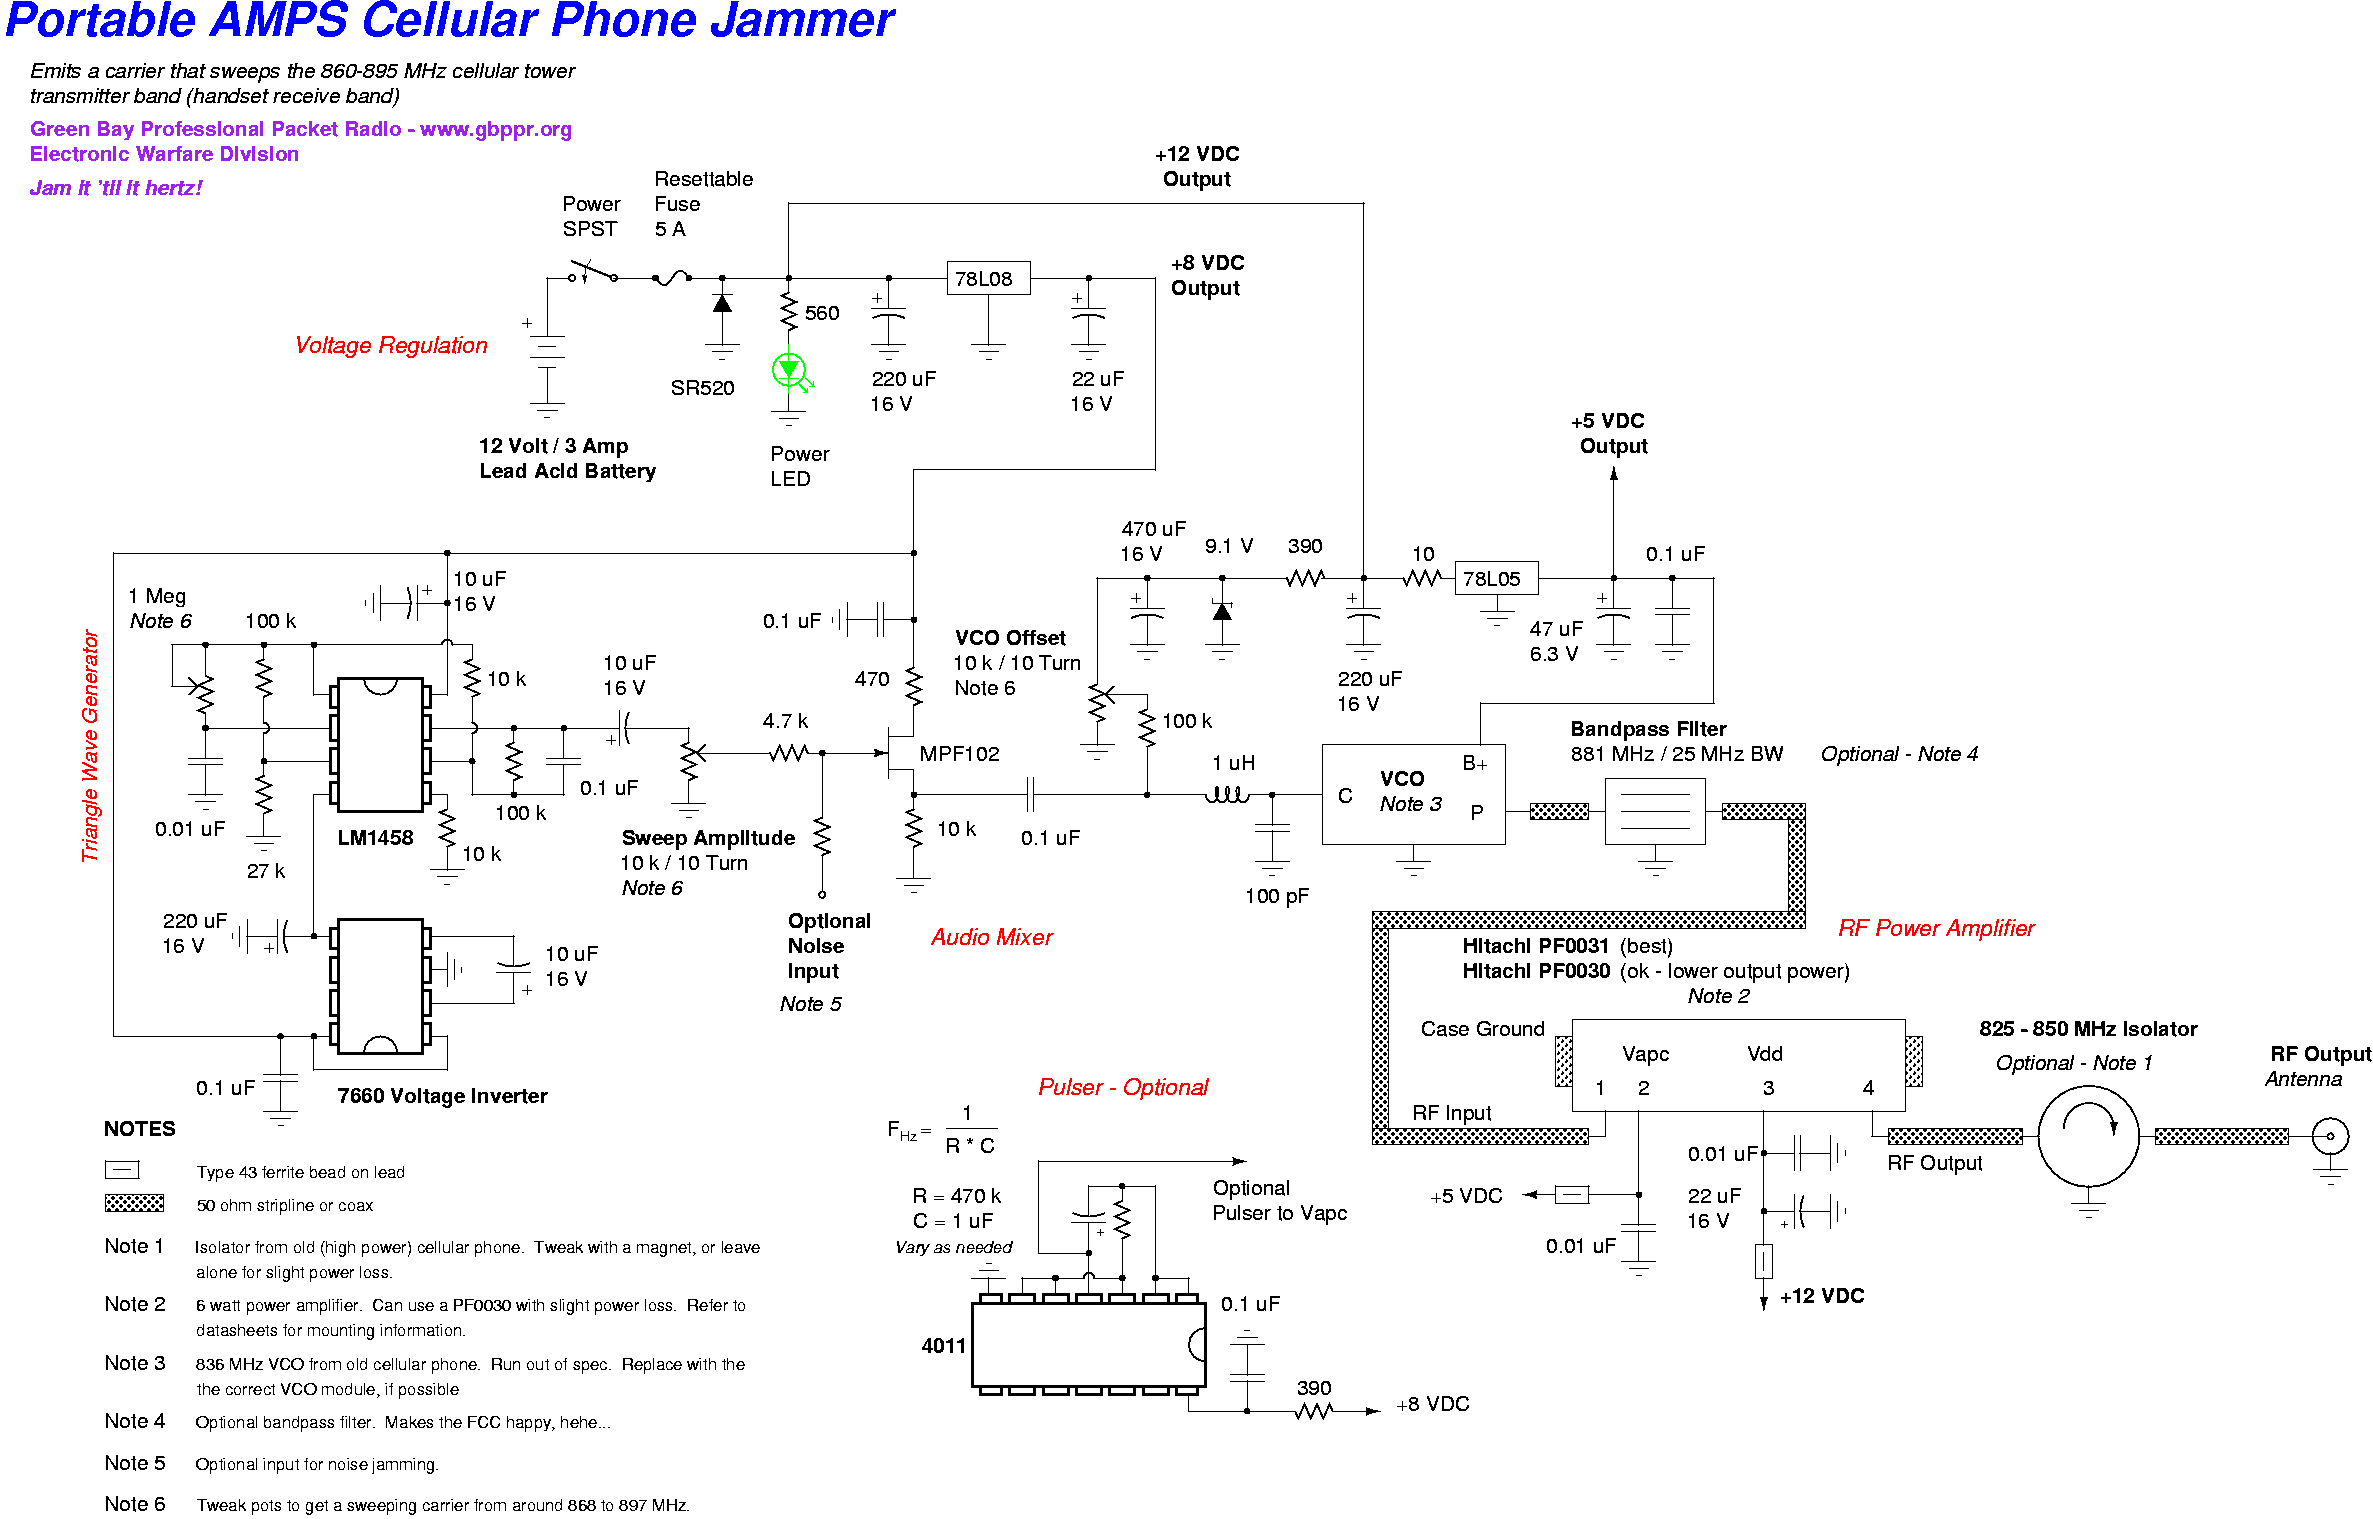 Pre Schematic Diagram together with Phone Motherboard Diagram likewise Electronic Schematics Emp as well Selector Switch Ladder Diagram in addition Push Pull Diagram. on transistor power lifier schematics